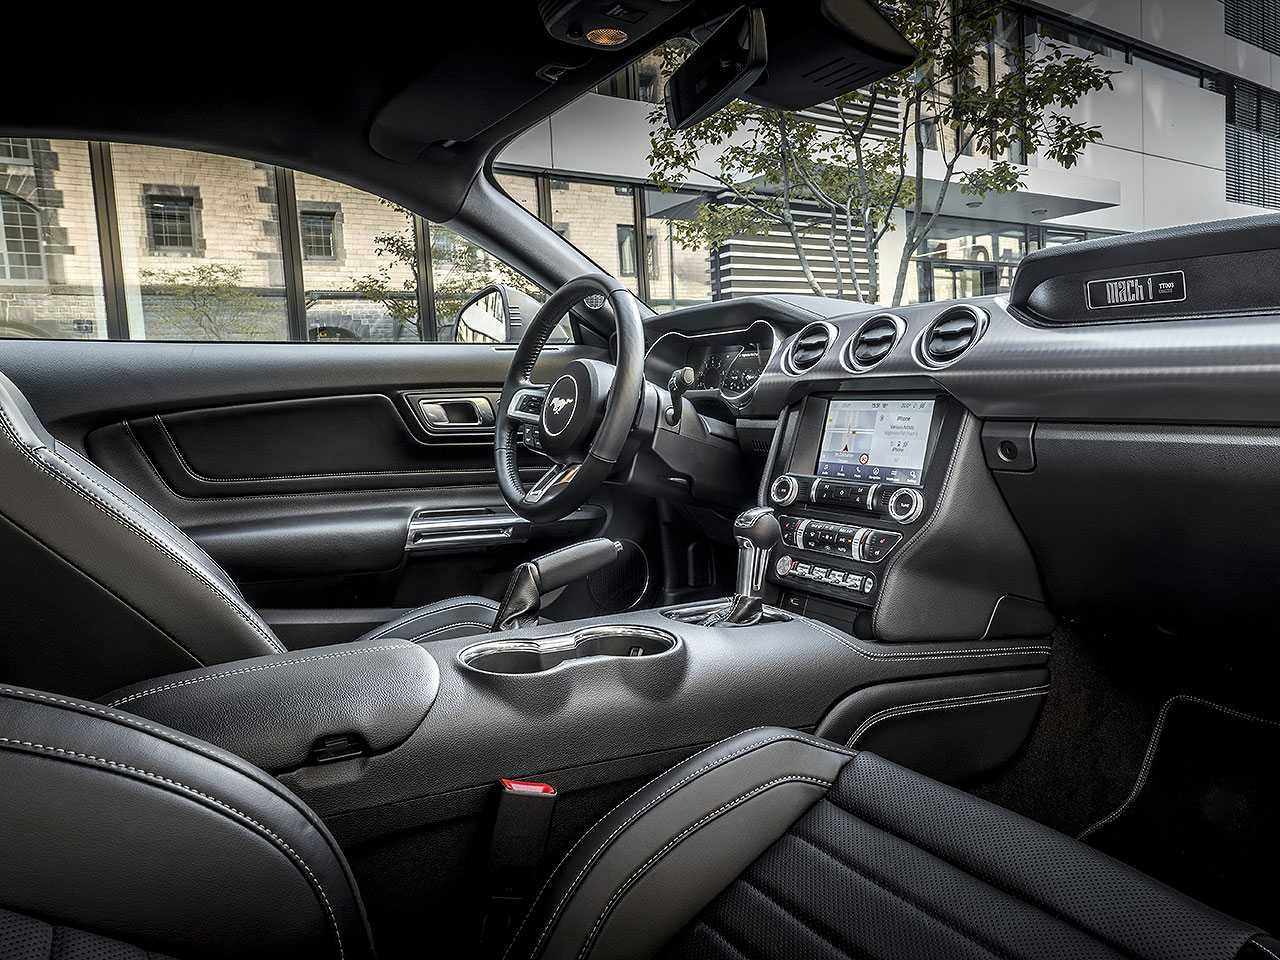 FordMustang 2021 - painel